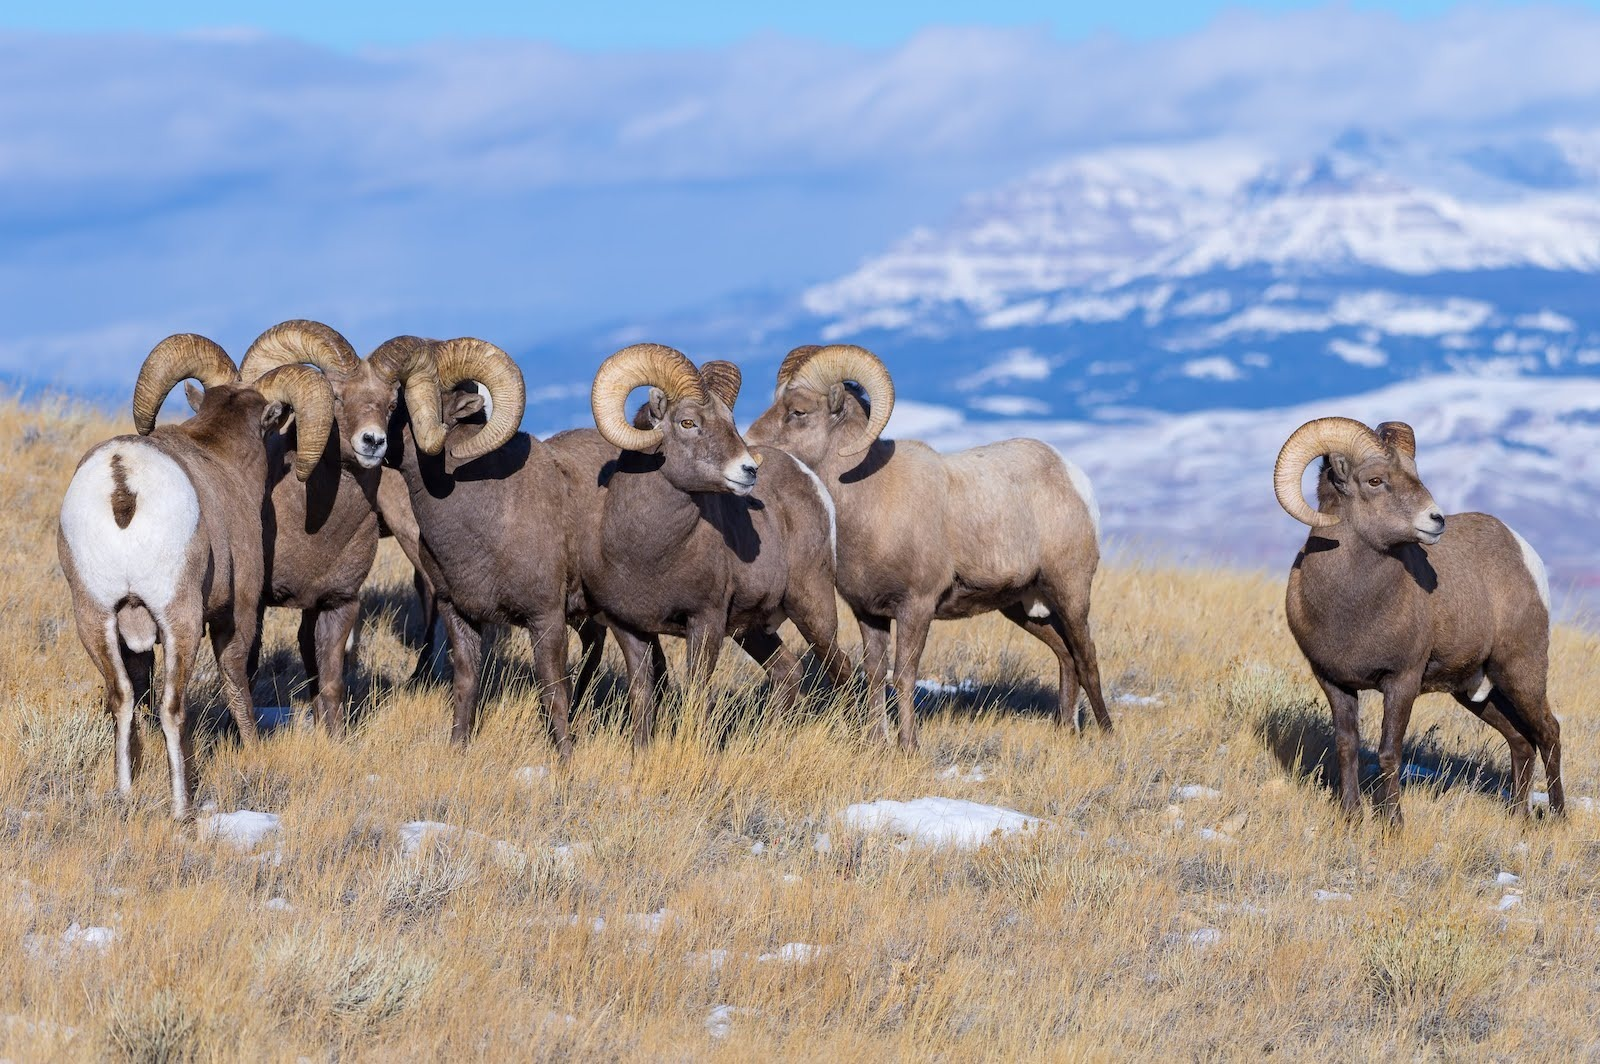 Bighorn Sheep near Dubois, Wyoming as part of the Yellowstone experience